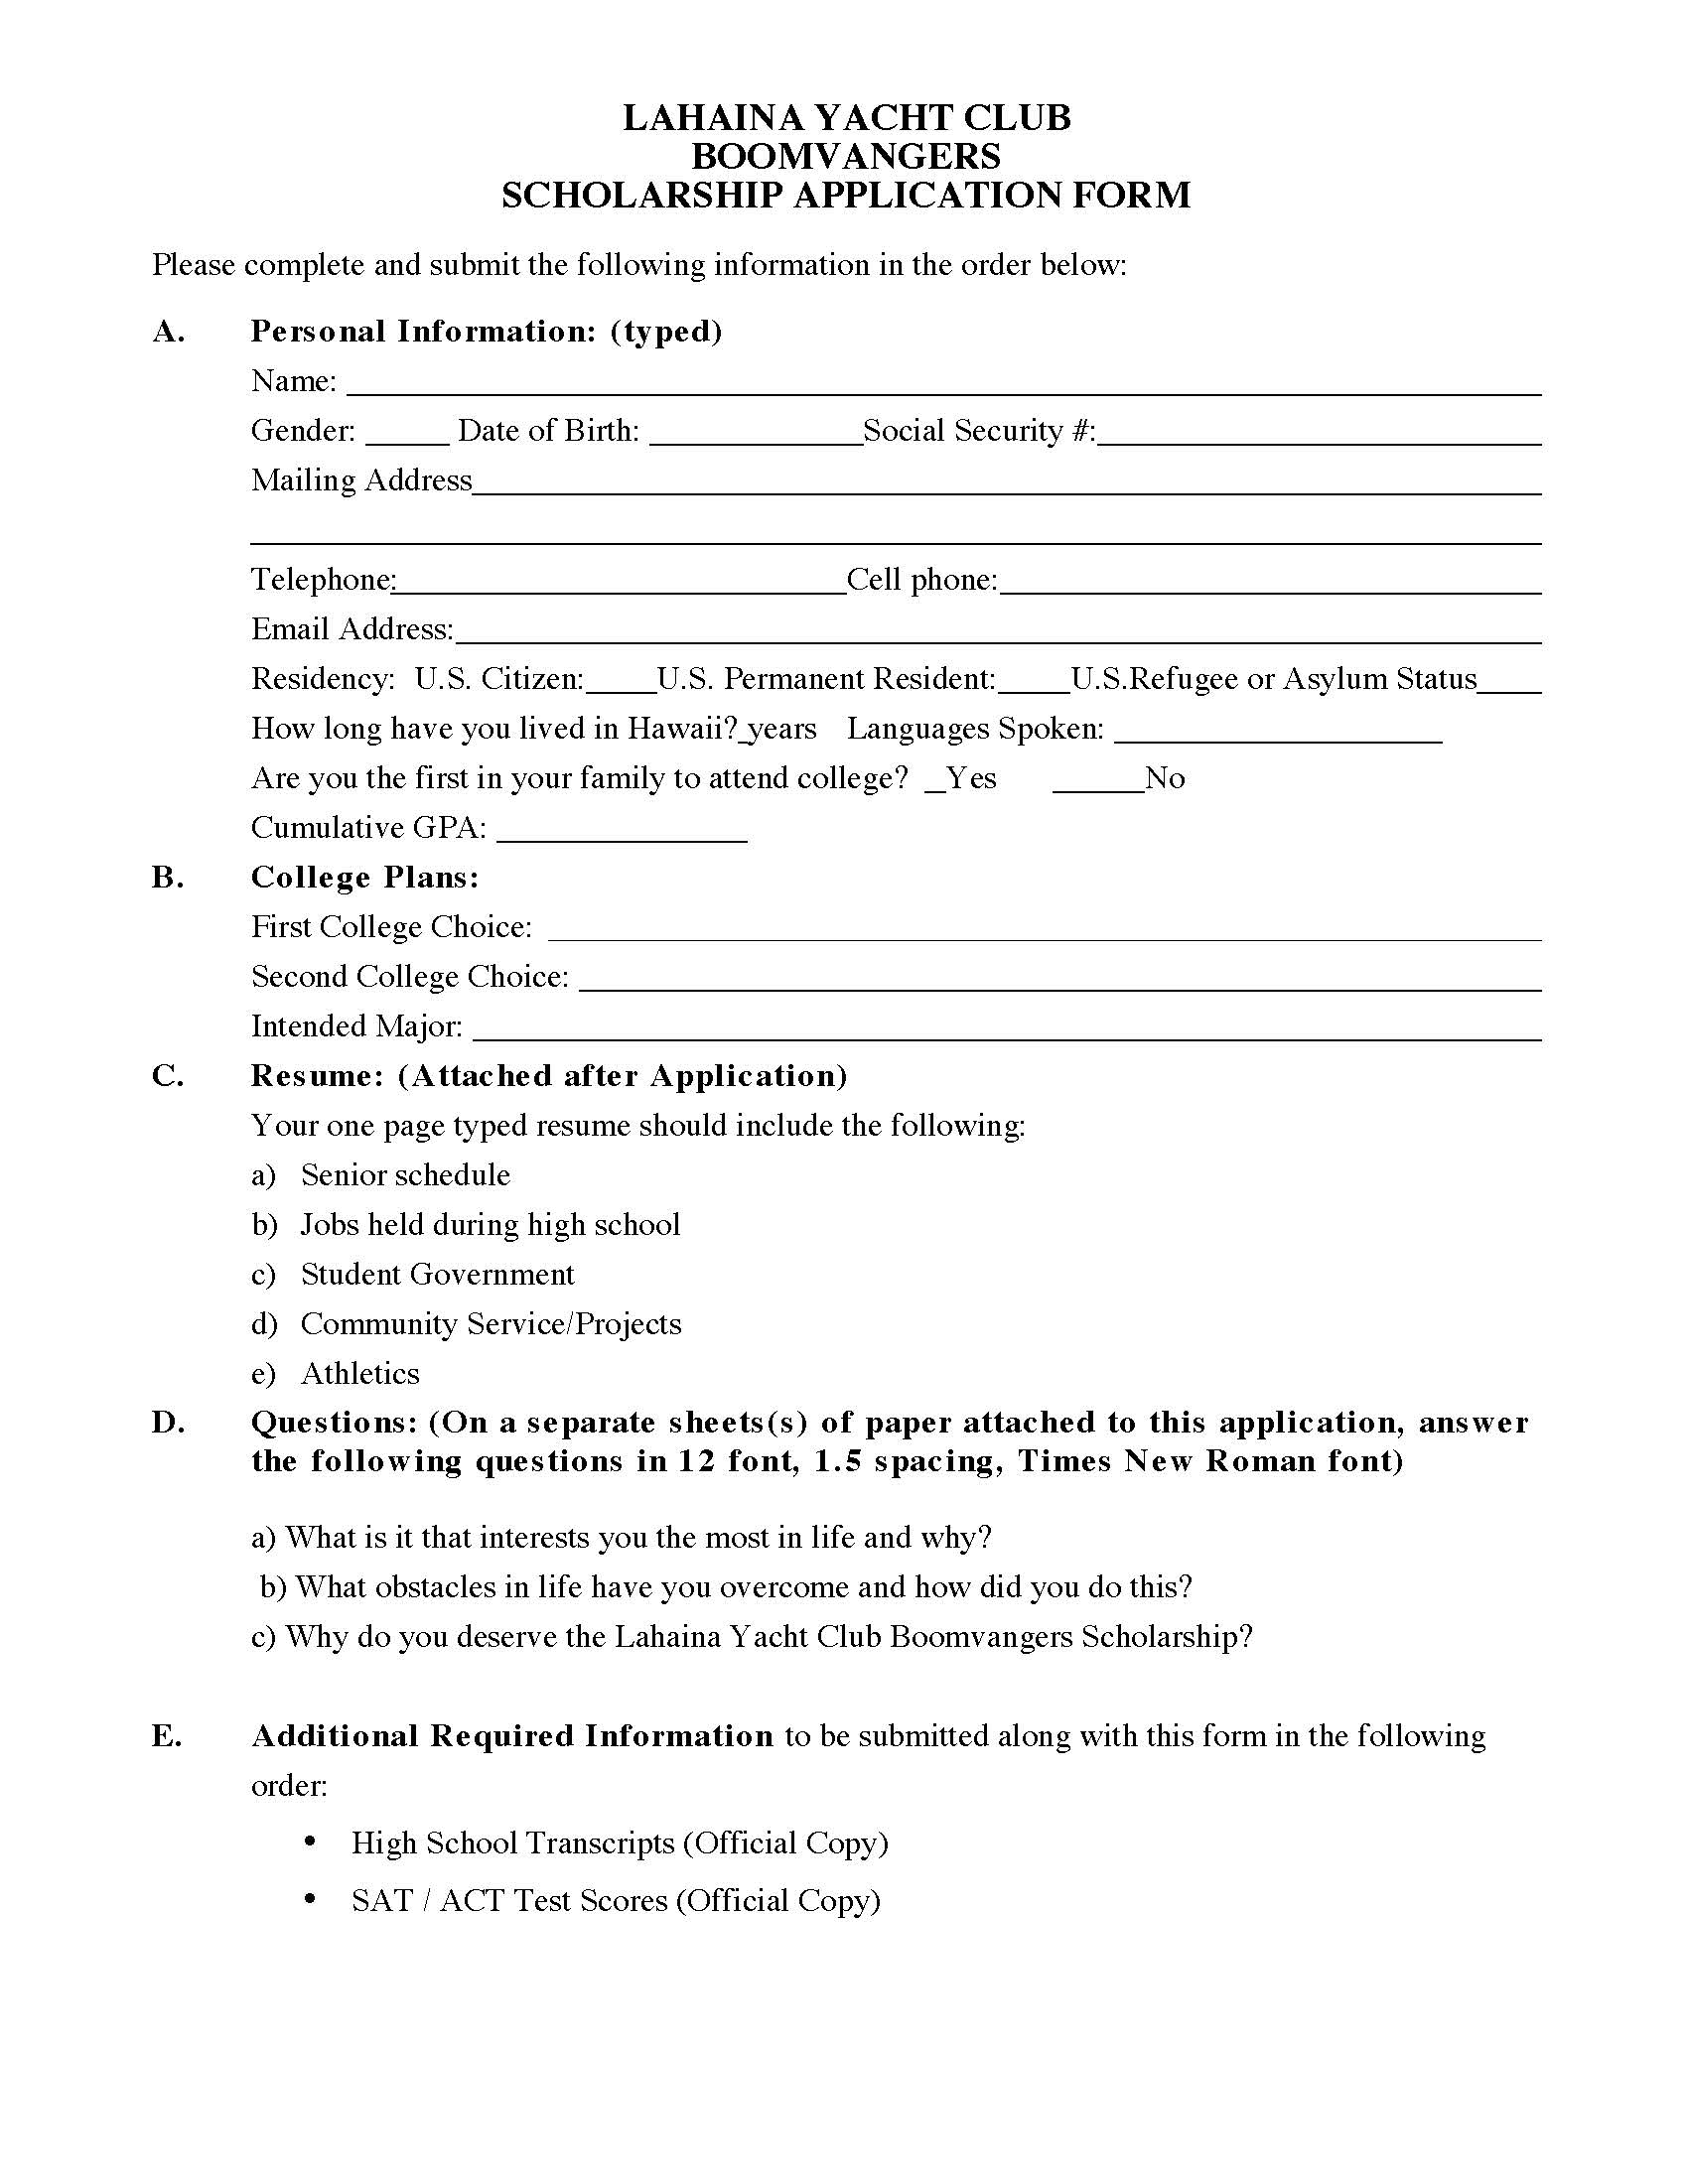 LYC Scholarship Application 2019_Page_1.jpg